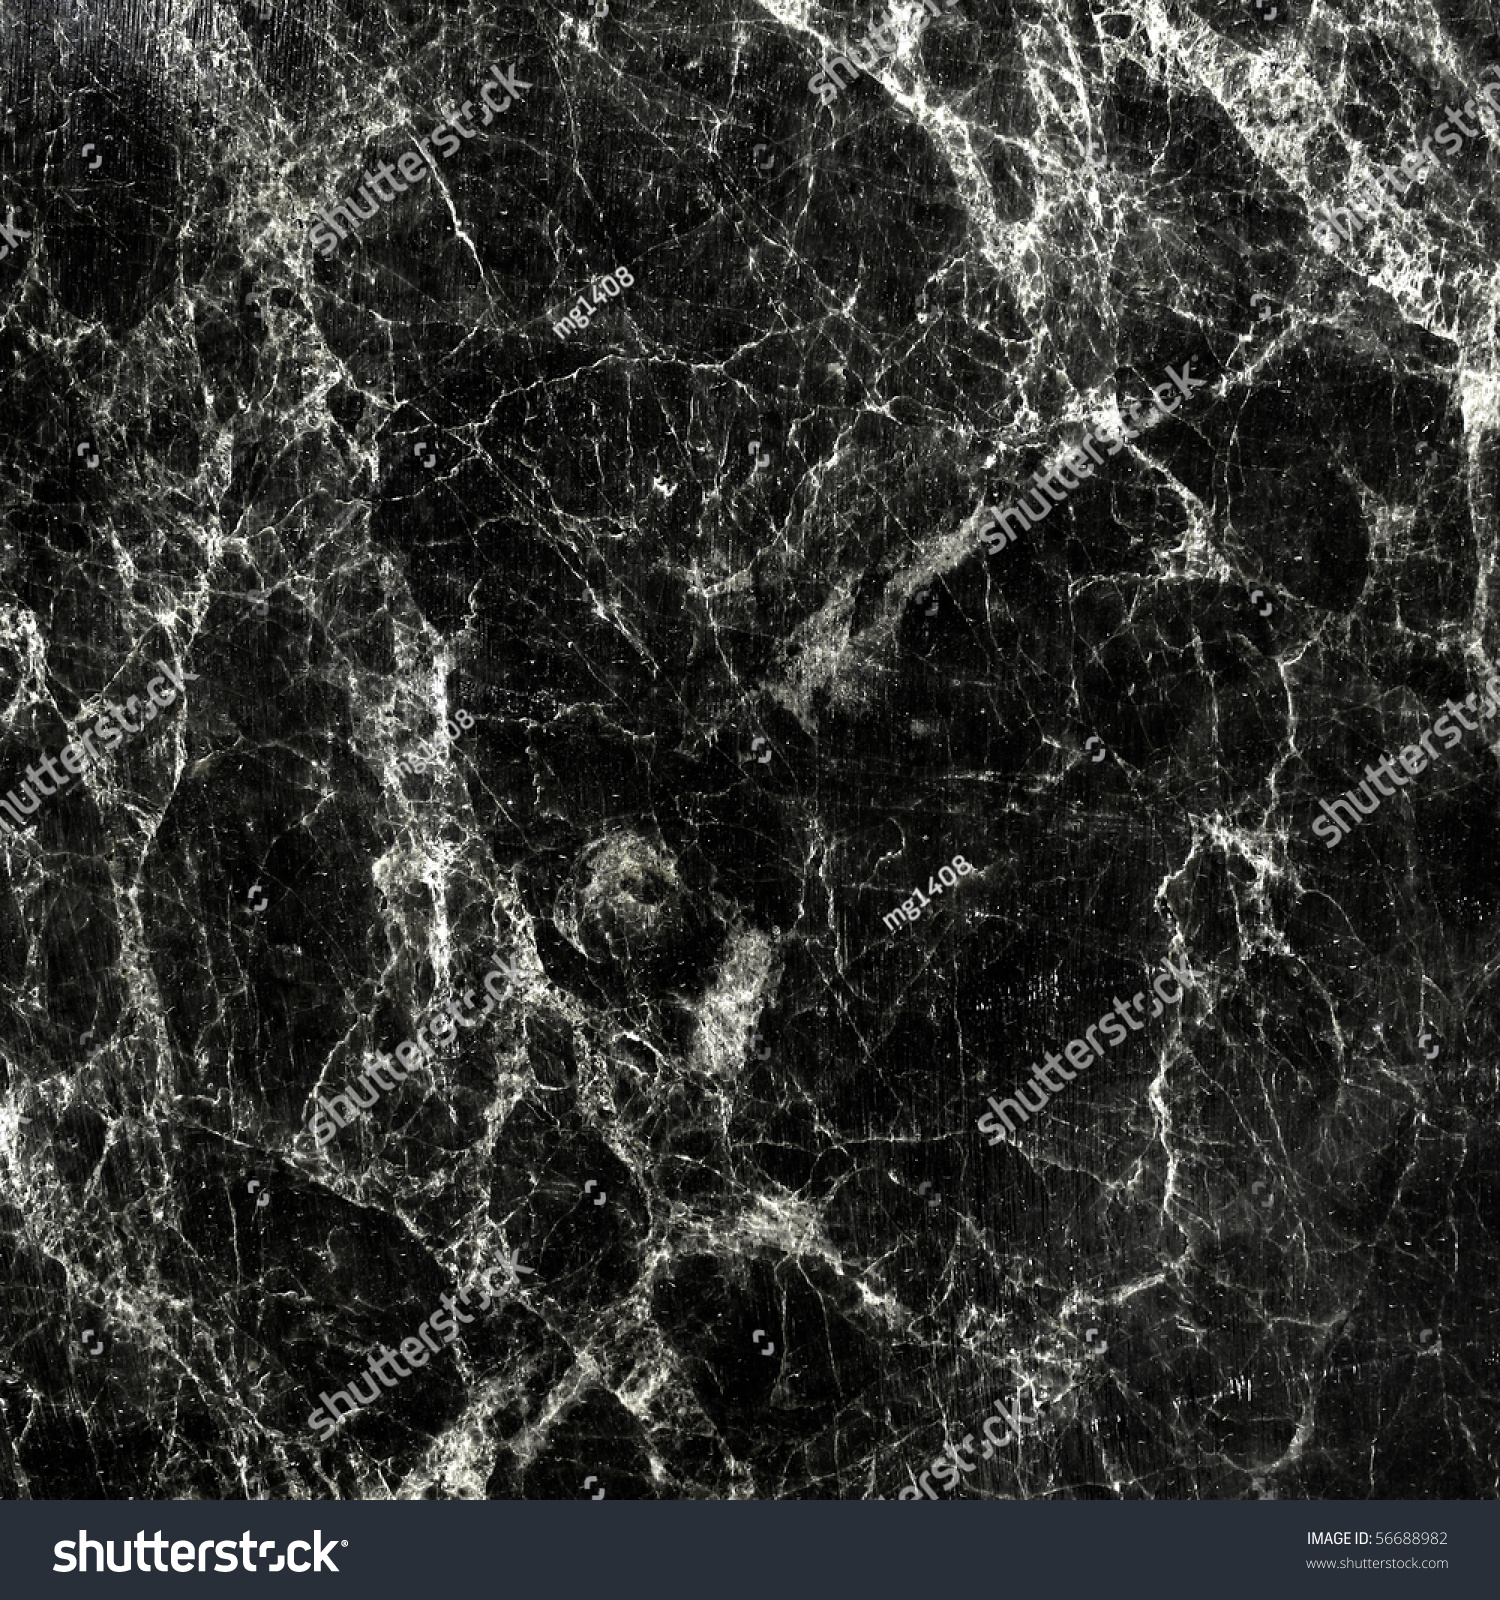 Black Marble Texture Images Stock Photos amp Vectors